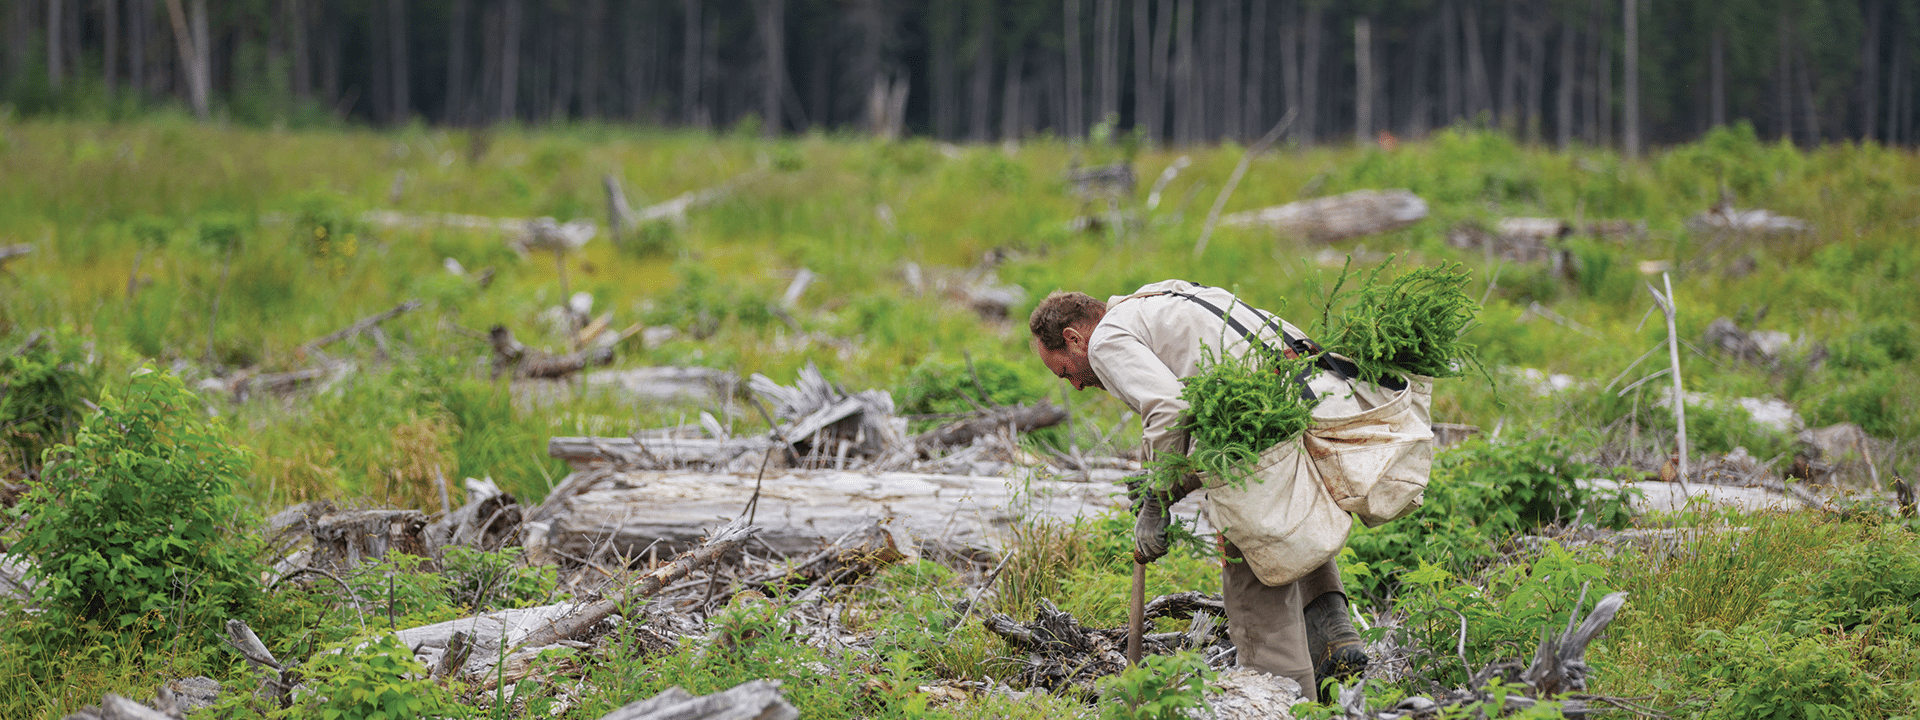 man bent over in field planting trees for charity